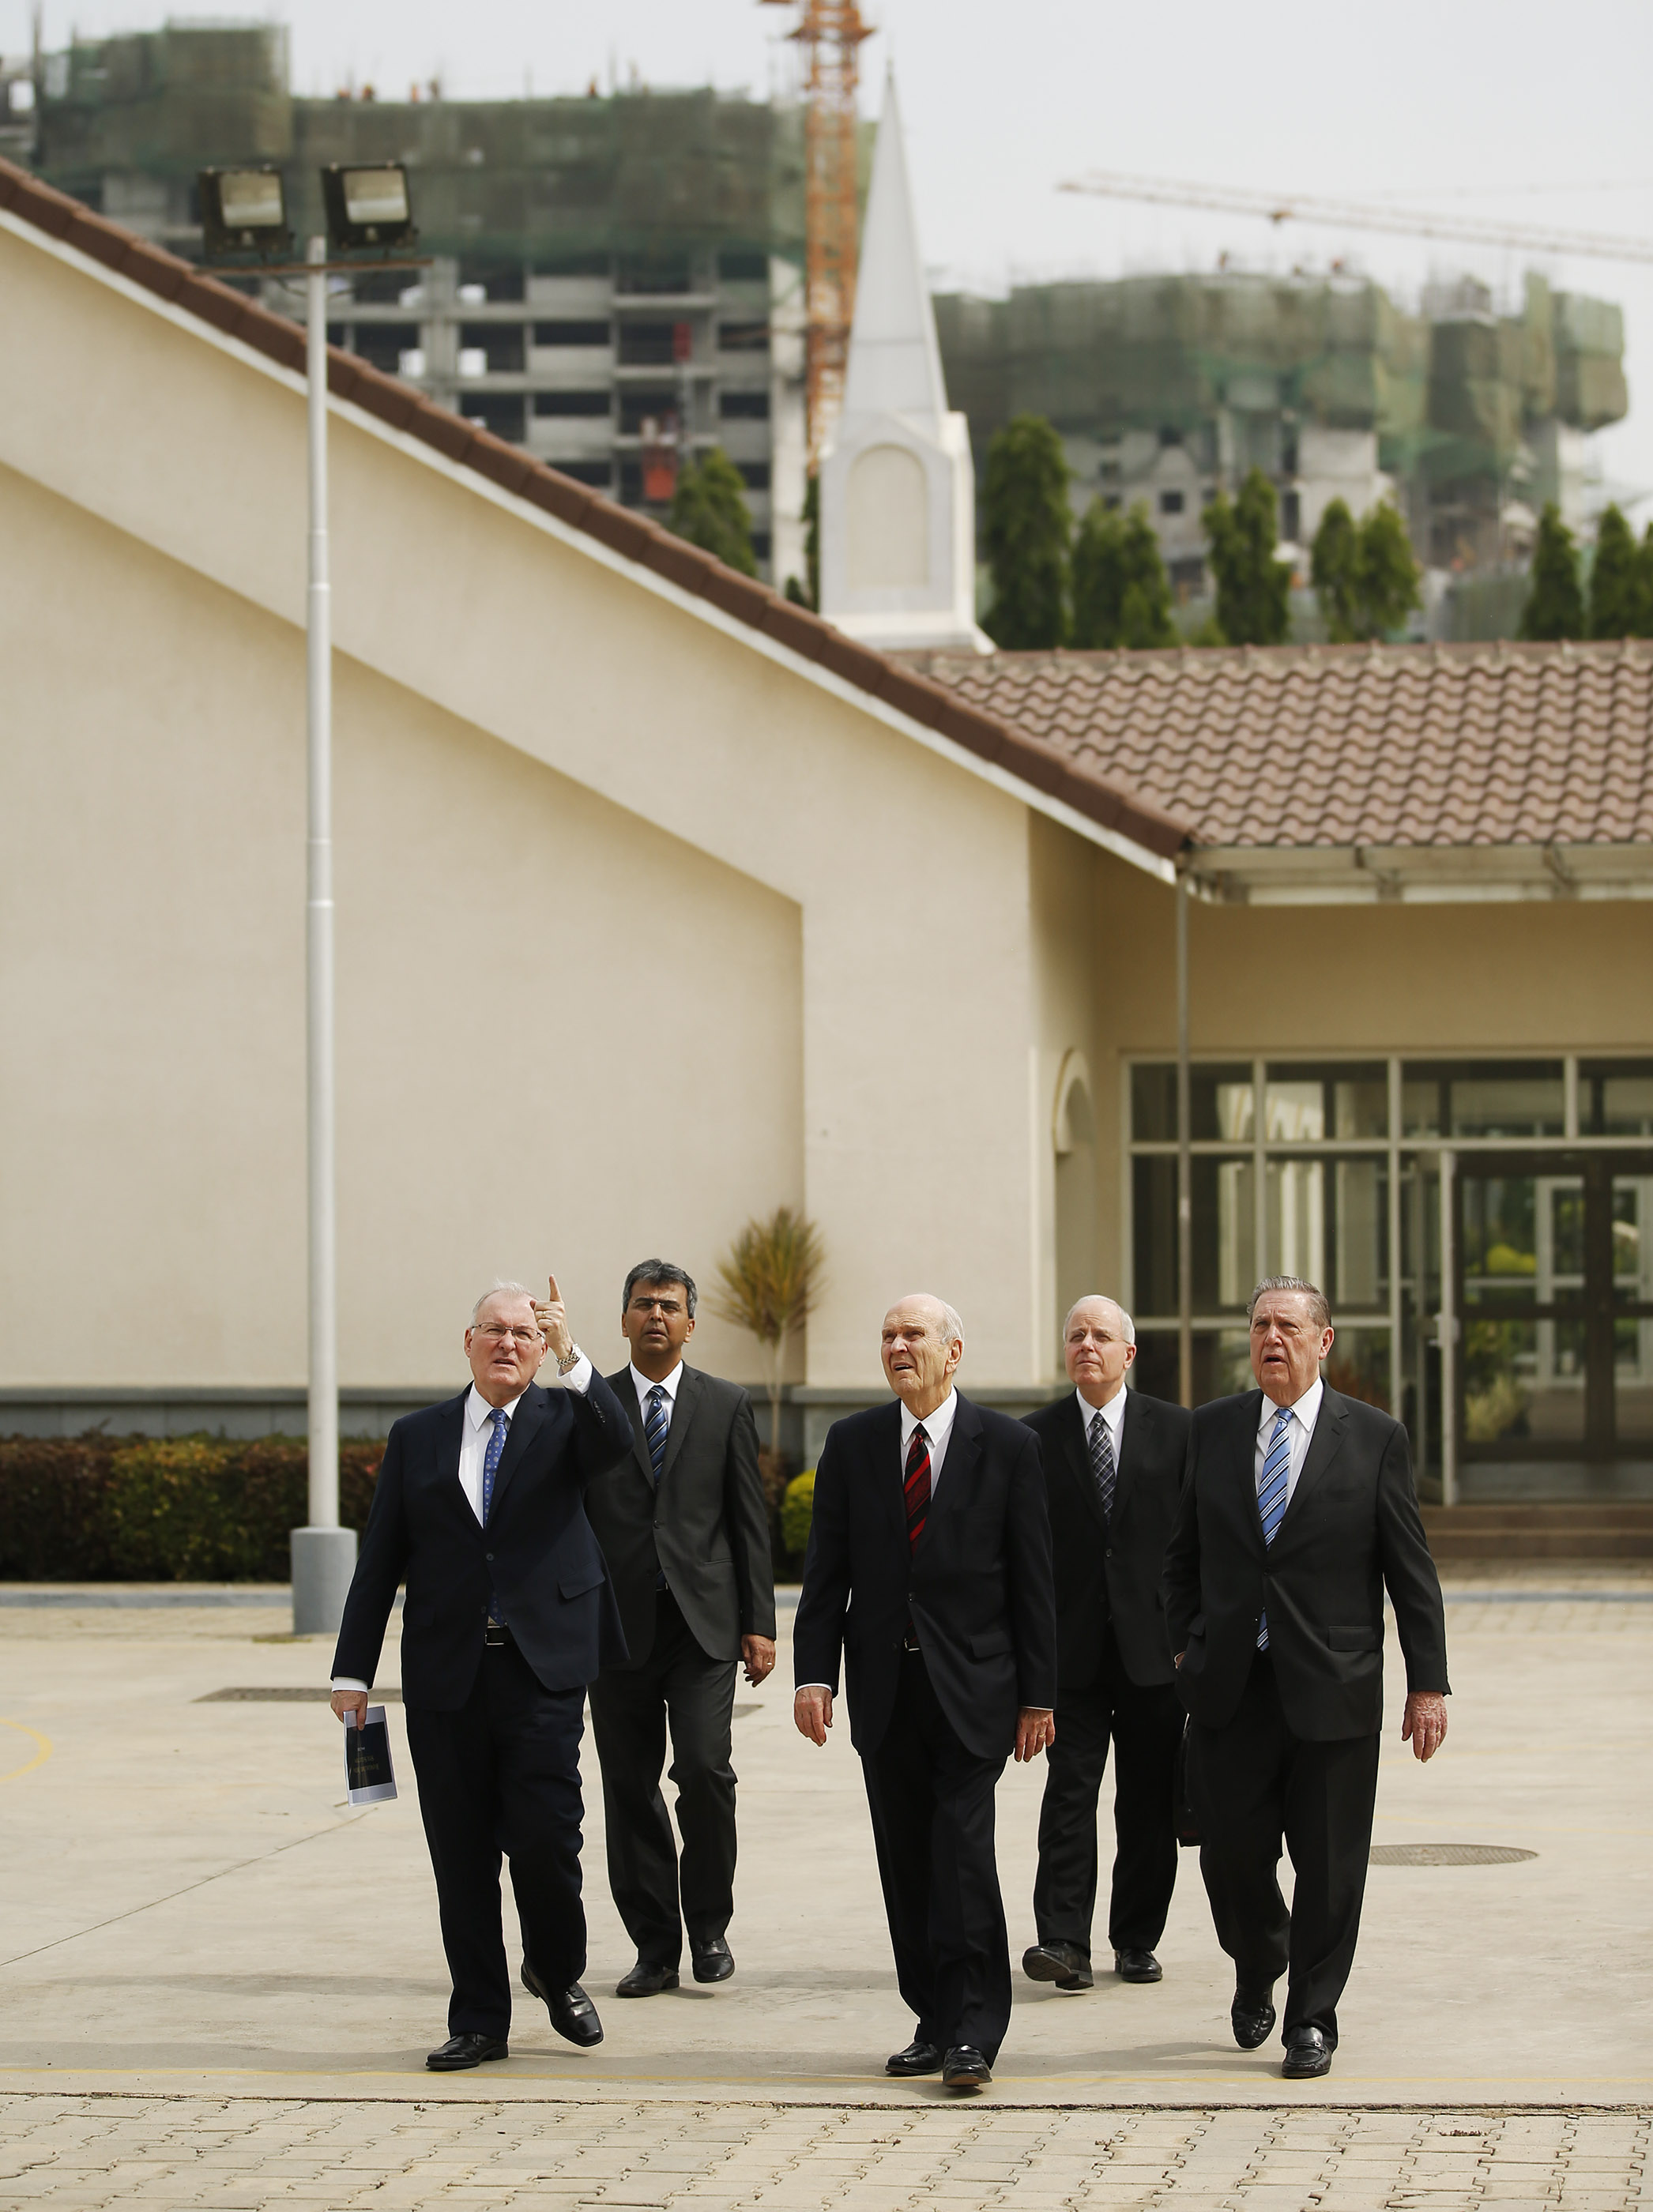 President Russell M. Nelson and Elder Jeffrey R. Holland of the Quorum of the Twelve Apostles, look over a possible temple site in Bengaluru, India on Thursday, April 19, 2018. They are accompanied by Elder Randy D. Funk, General Authority Seventy, and Elder Robert K. William, an Area Seventy.